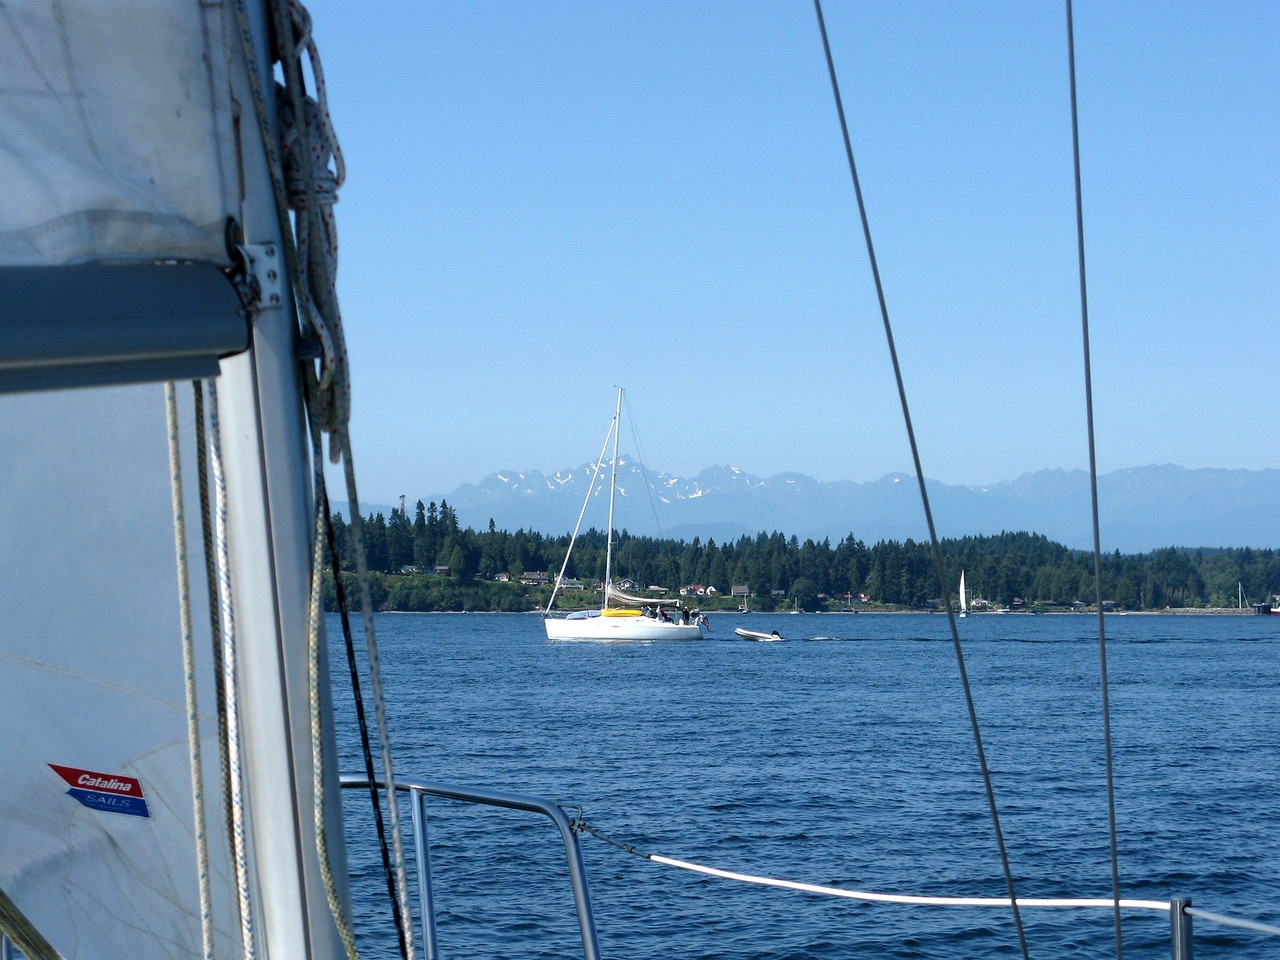 A sailboat crosses our route.